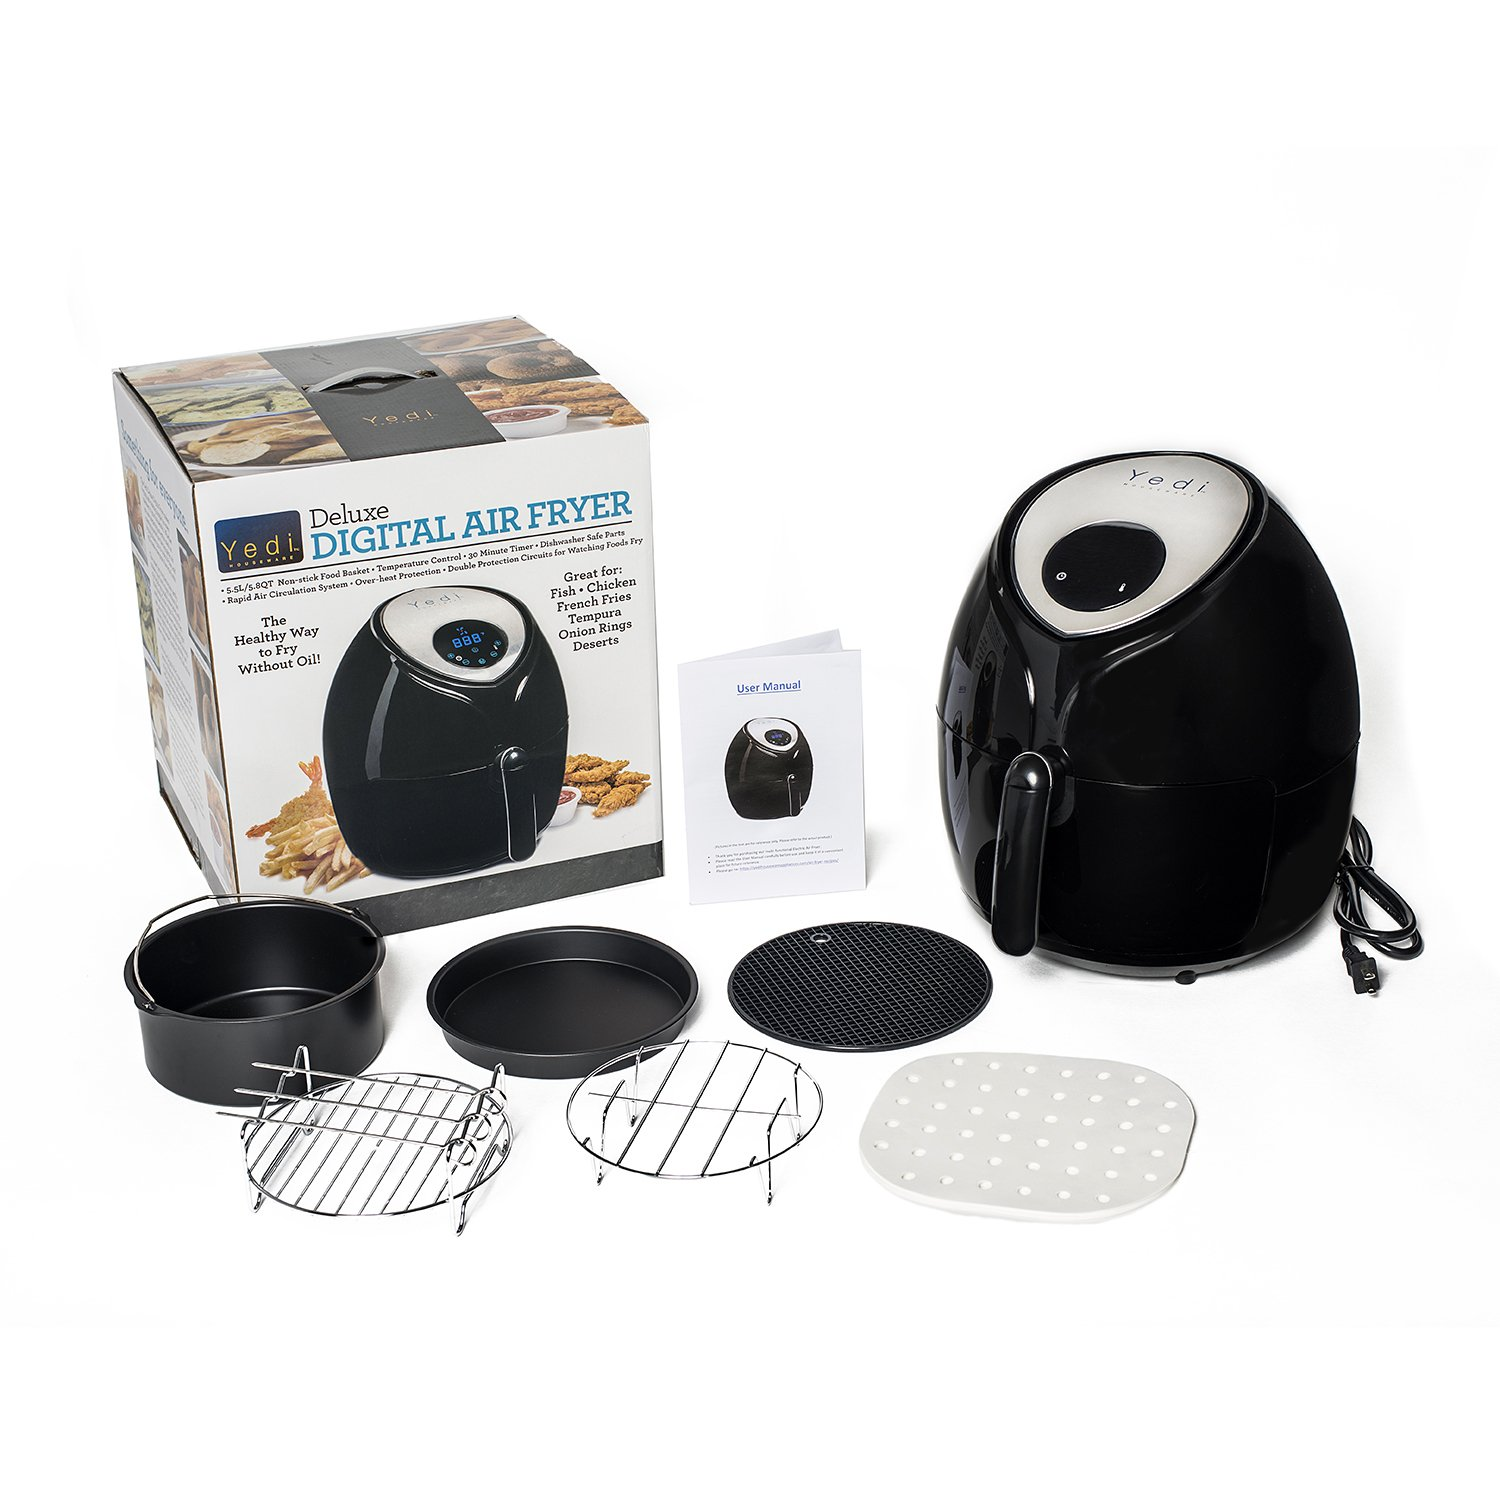 Air Fryer, 5.8 Quart Size, with 50 perforated steaming papers, 8 inch cake carrel, 8 inch pizza pan, multi-purpose rack, 3 stainless steel skewers, metal holder, & rubber mat by Yedi Houseware by YEDI HOUSEWARE